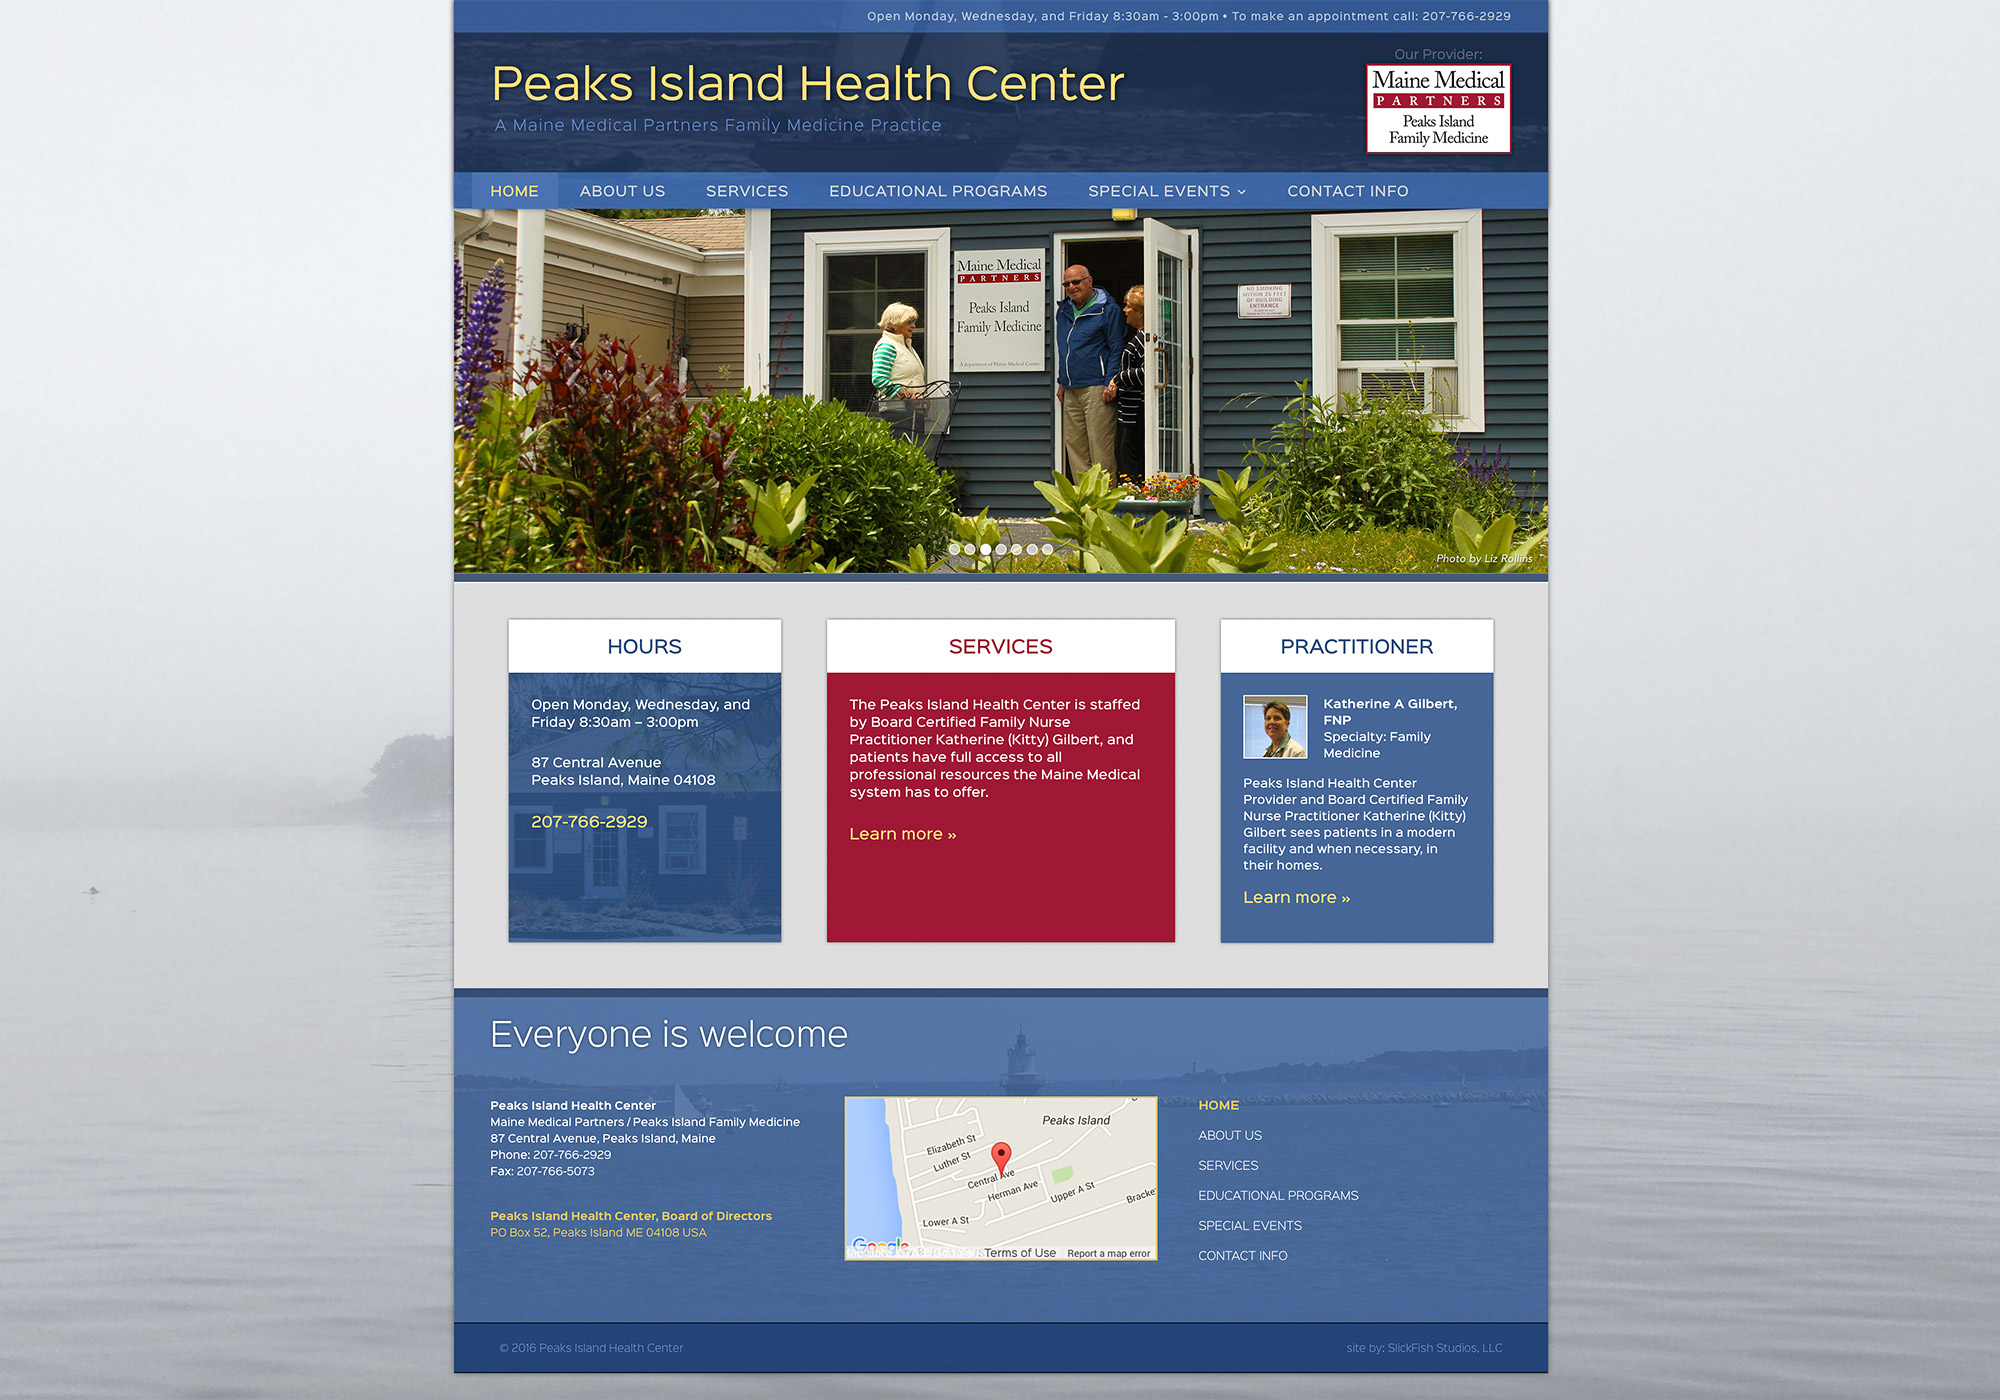 A screenshot crop of the SlickFish Studios designed website for the Peaks Island Health Center.